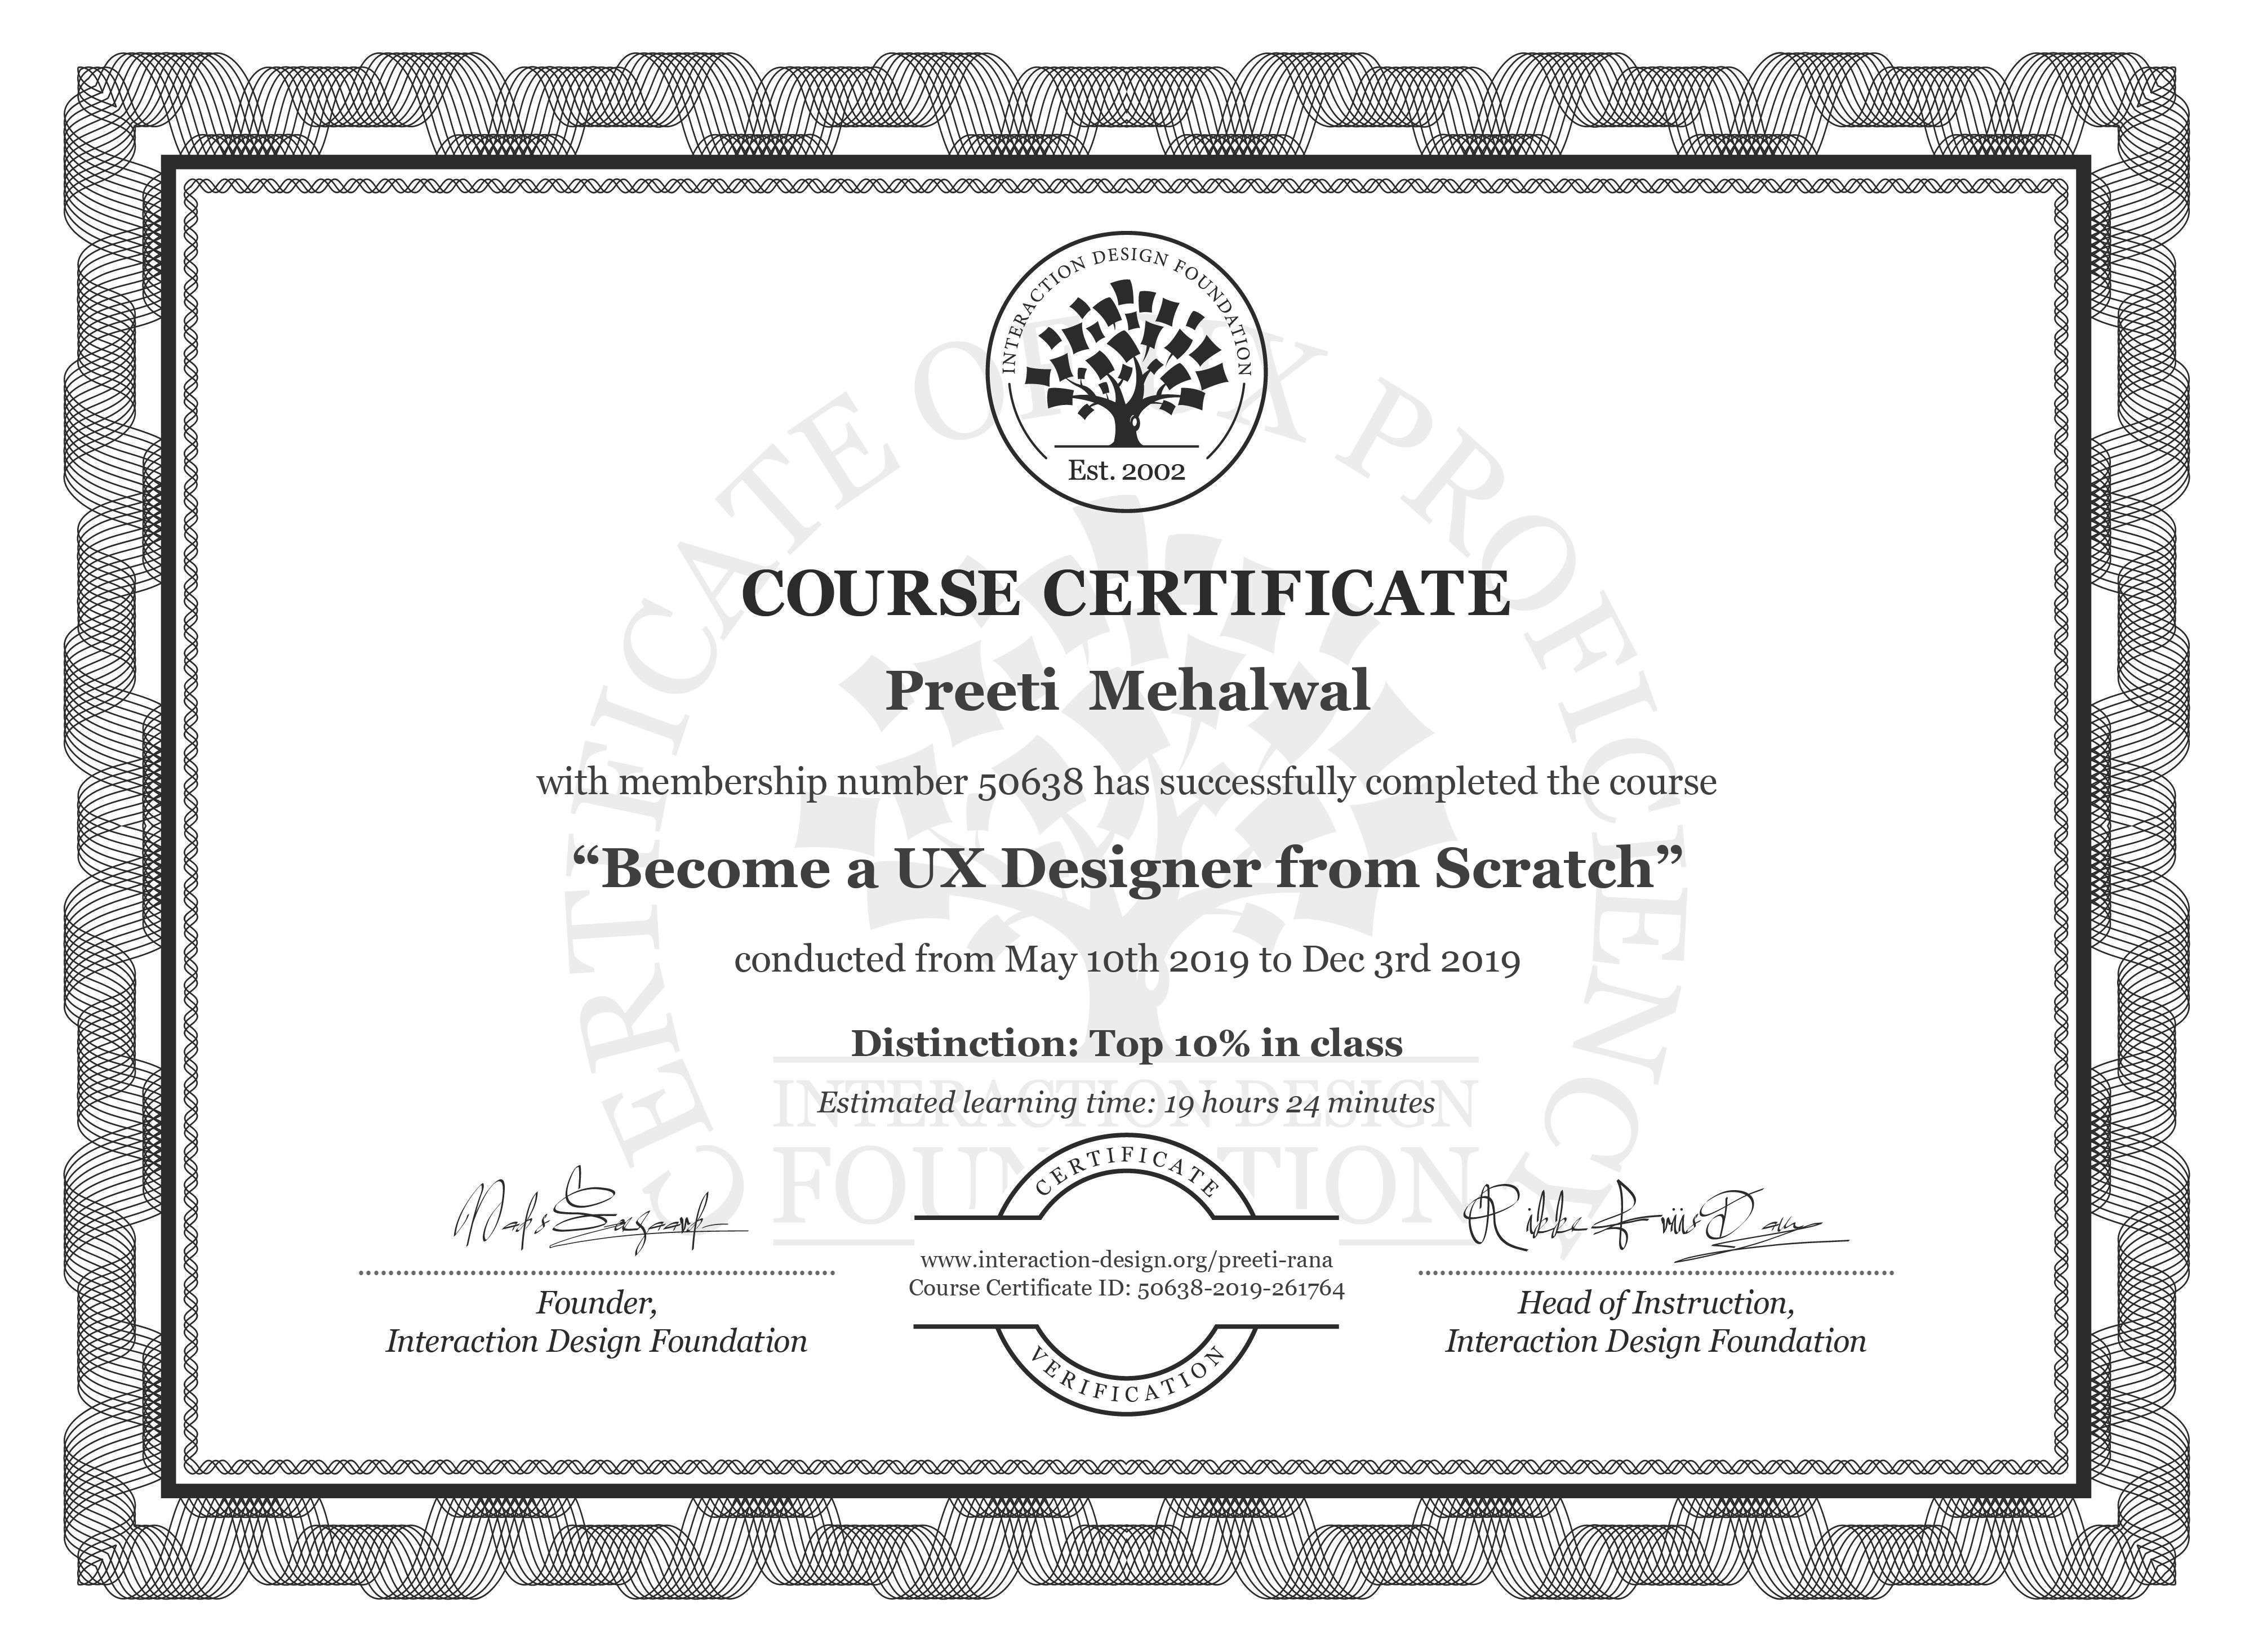 Preeti  Mehalwal's Course Certificate: User Experience: The Beginner's Guide